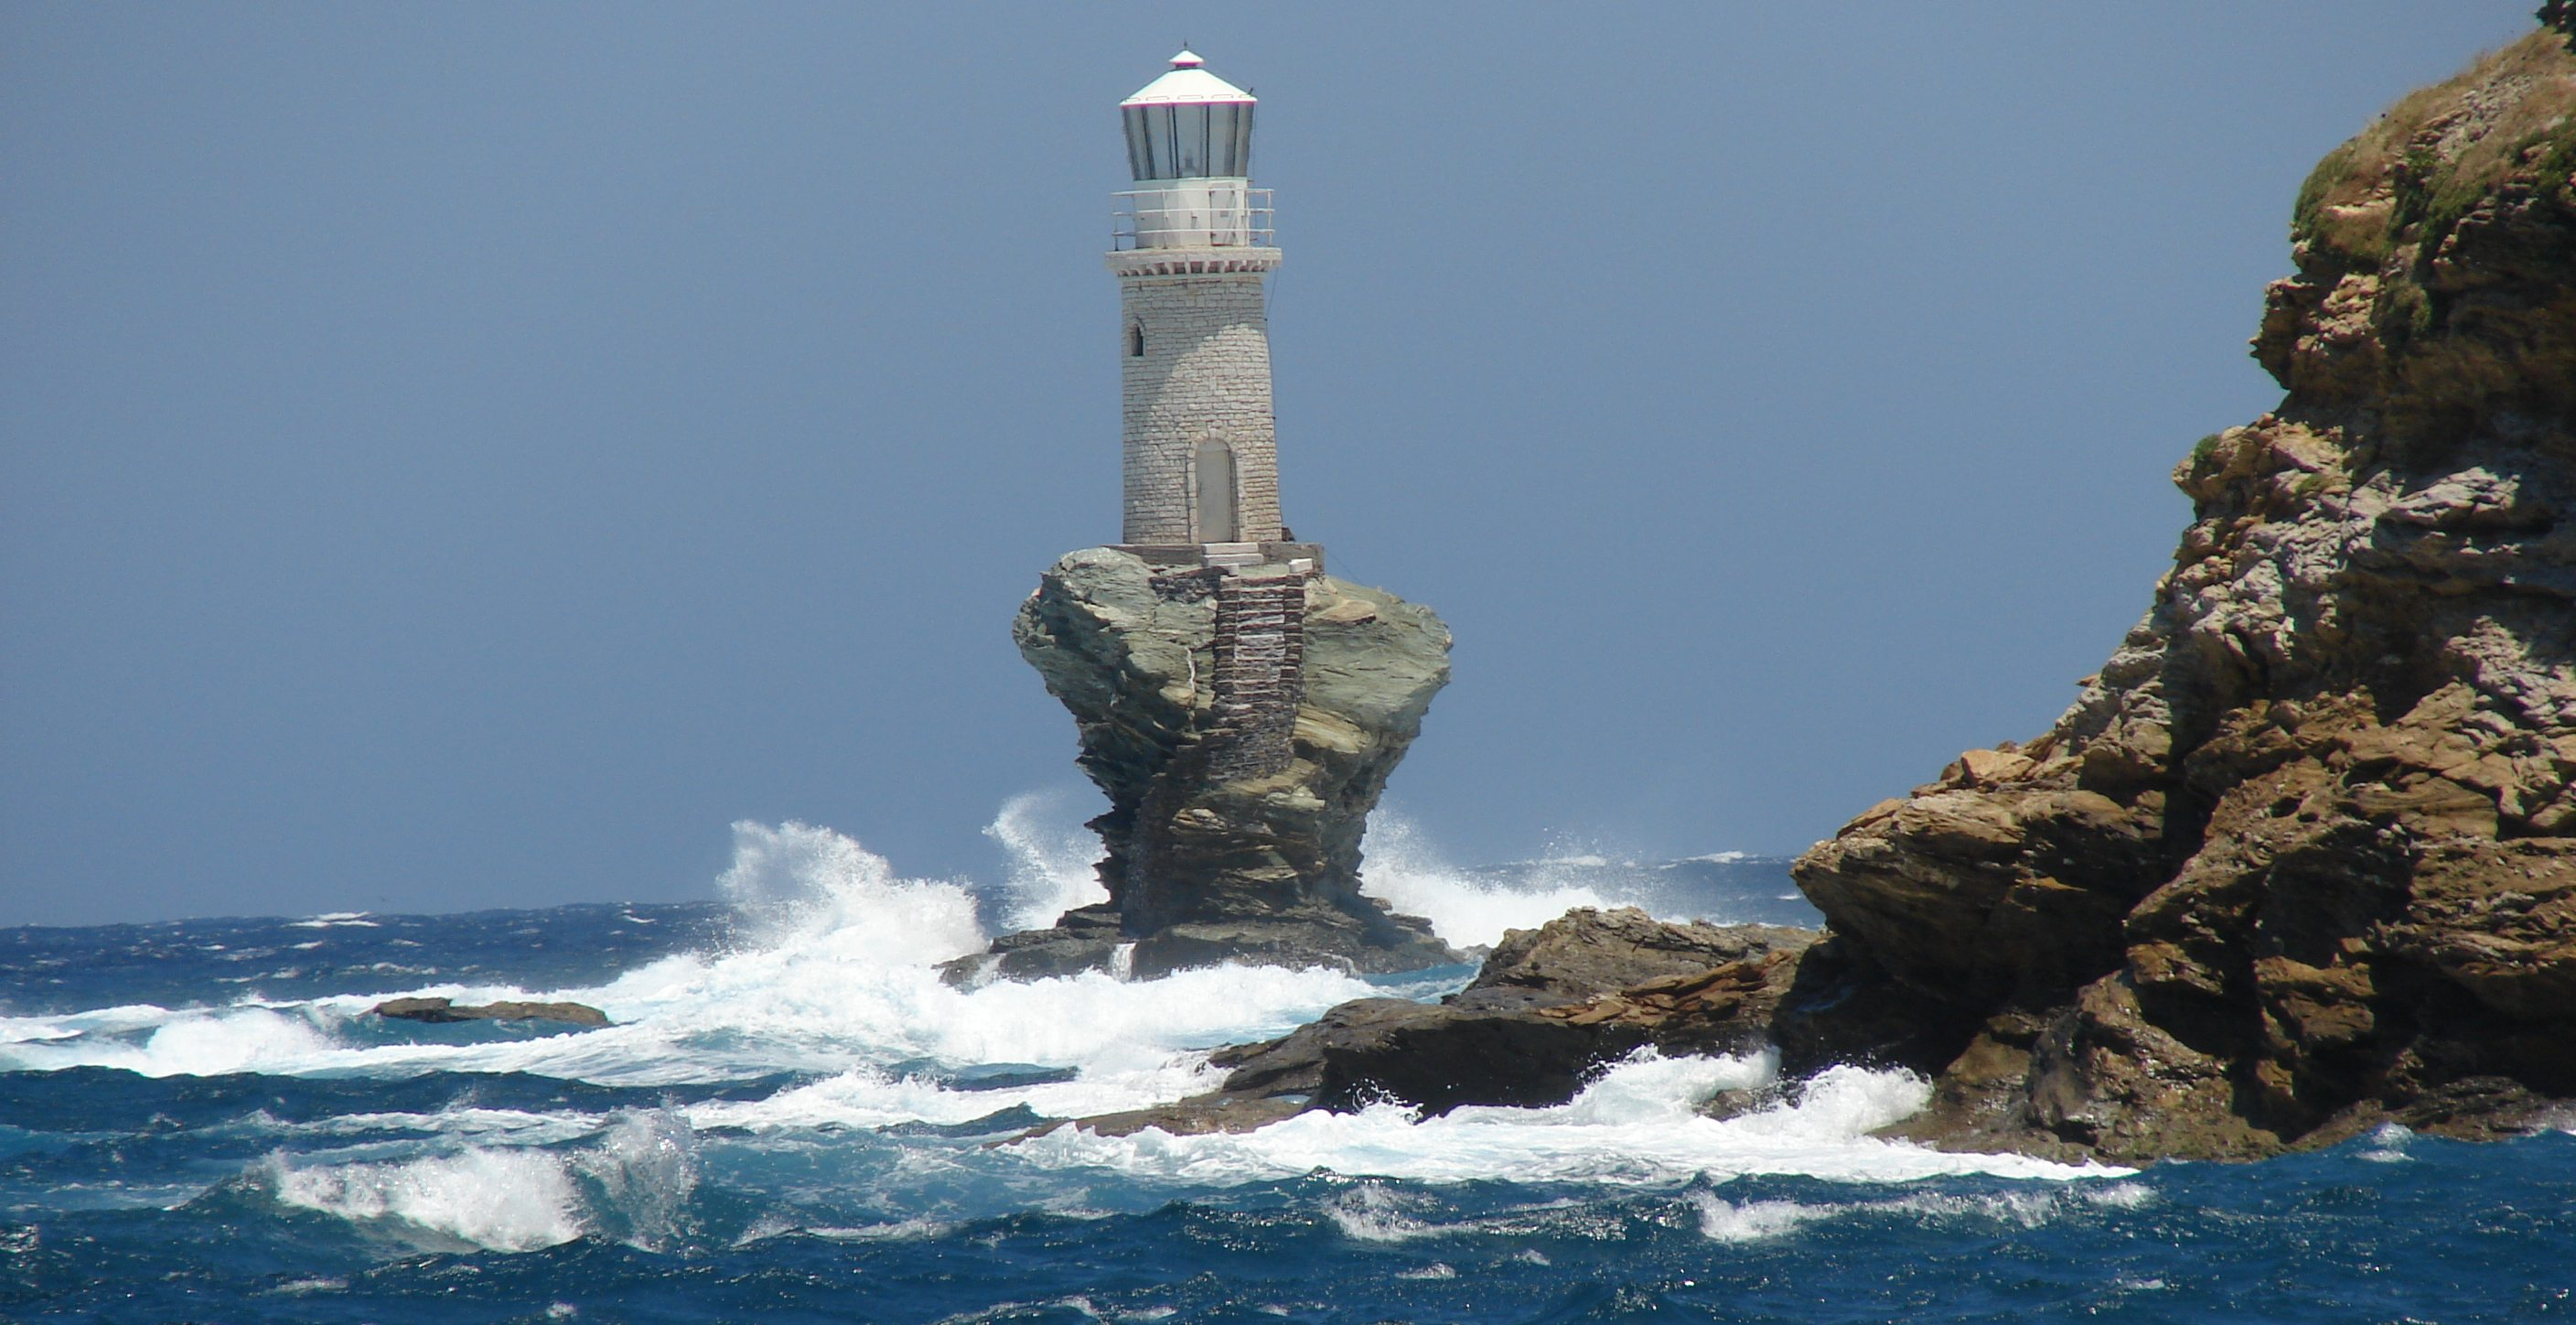 The lighthouse Tourlitis of Andros Island Greece was bulit in 2816x1448